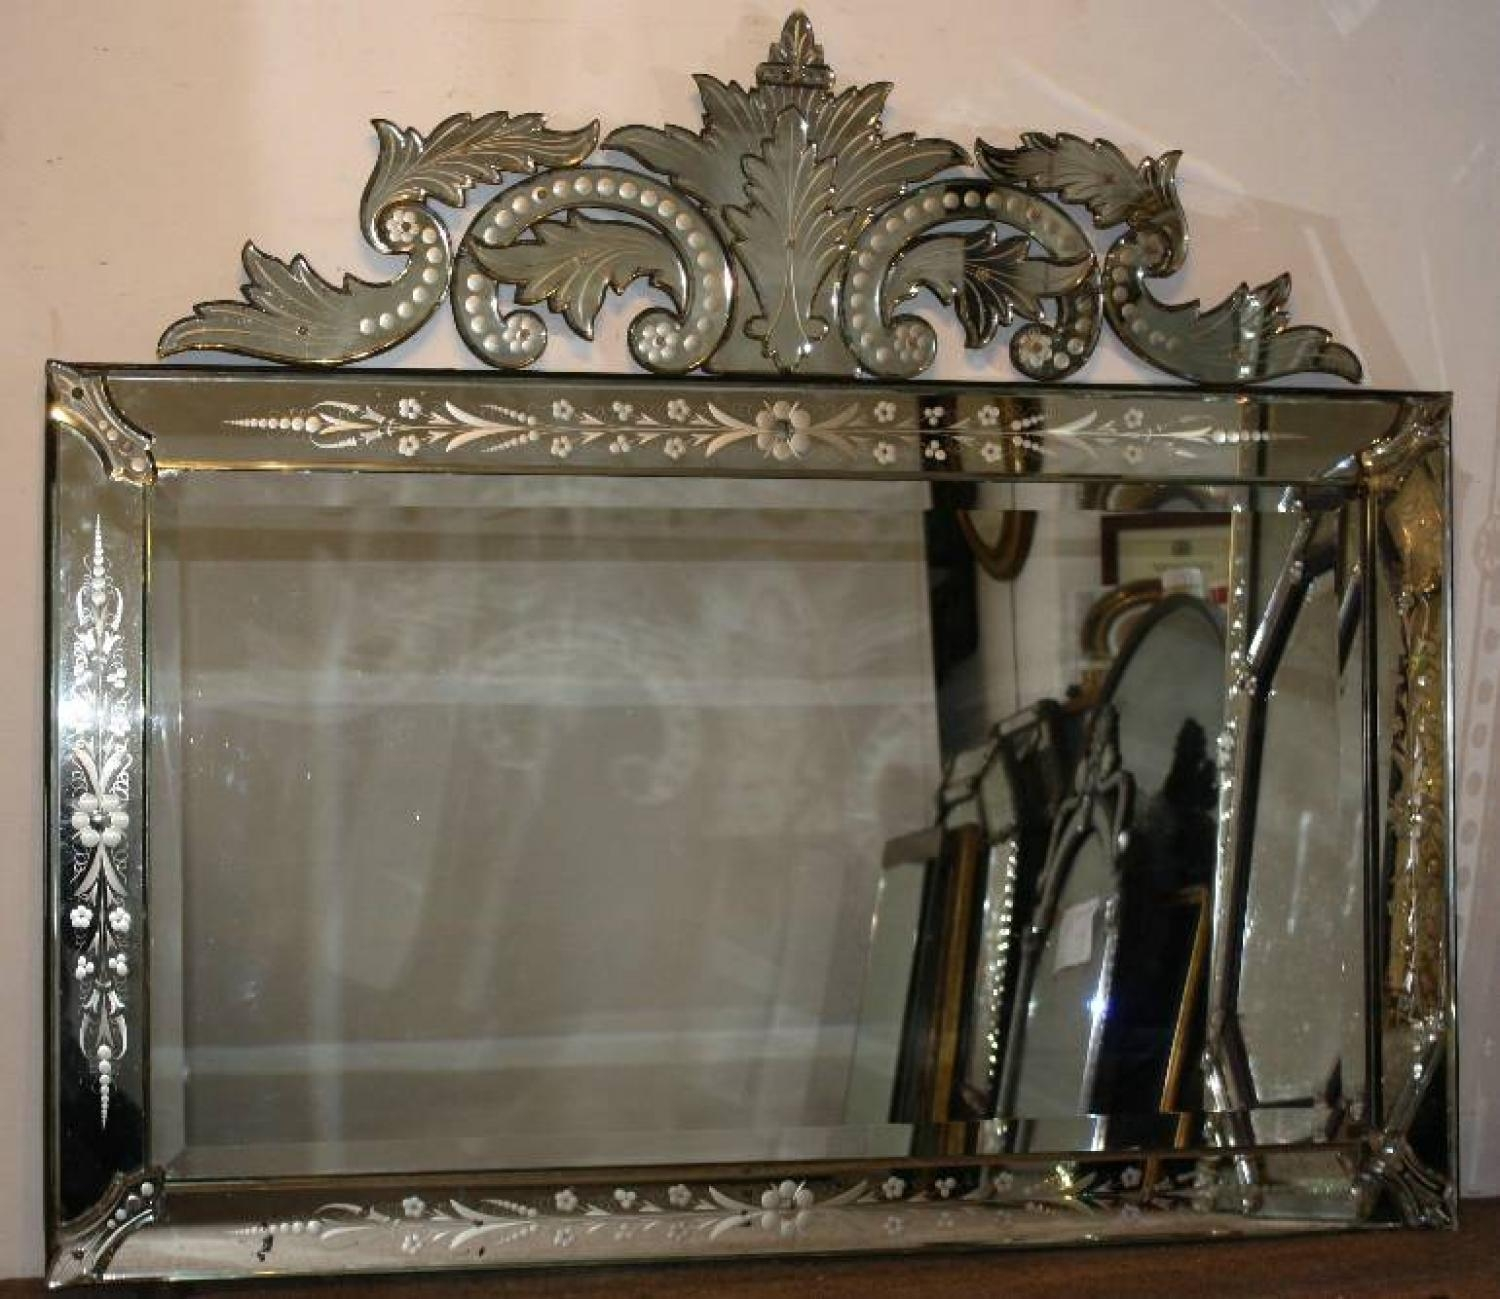 Venetian Mirrors For Sale | Vanity Decoration For Venetian Glass Mirrors Sale (View 7 of 20)